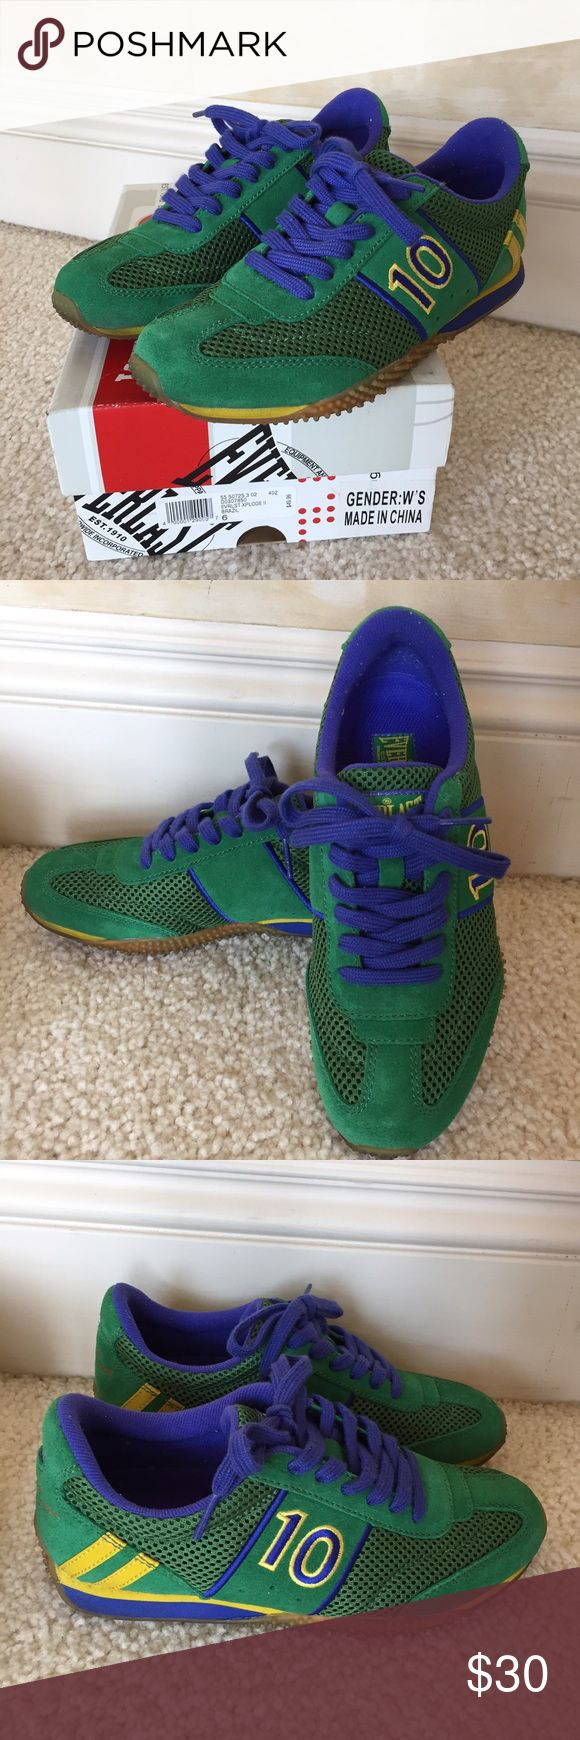 Women's Everlast XPLODE II Tennis Shoes Green Worn once. Nearly new condition. Everlast Shoes Athletic Shoes